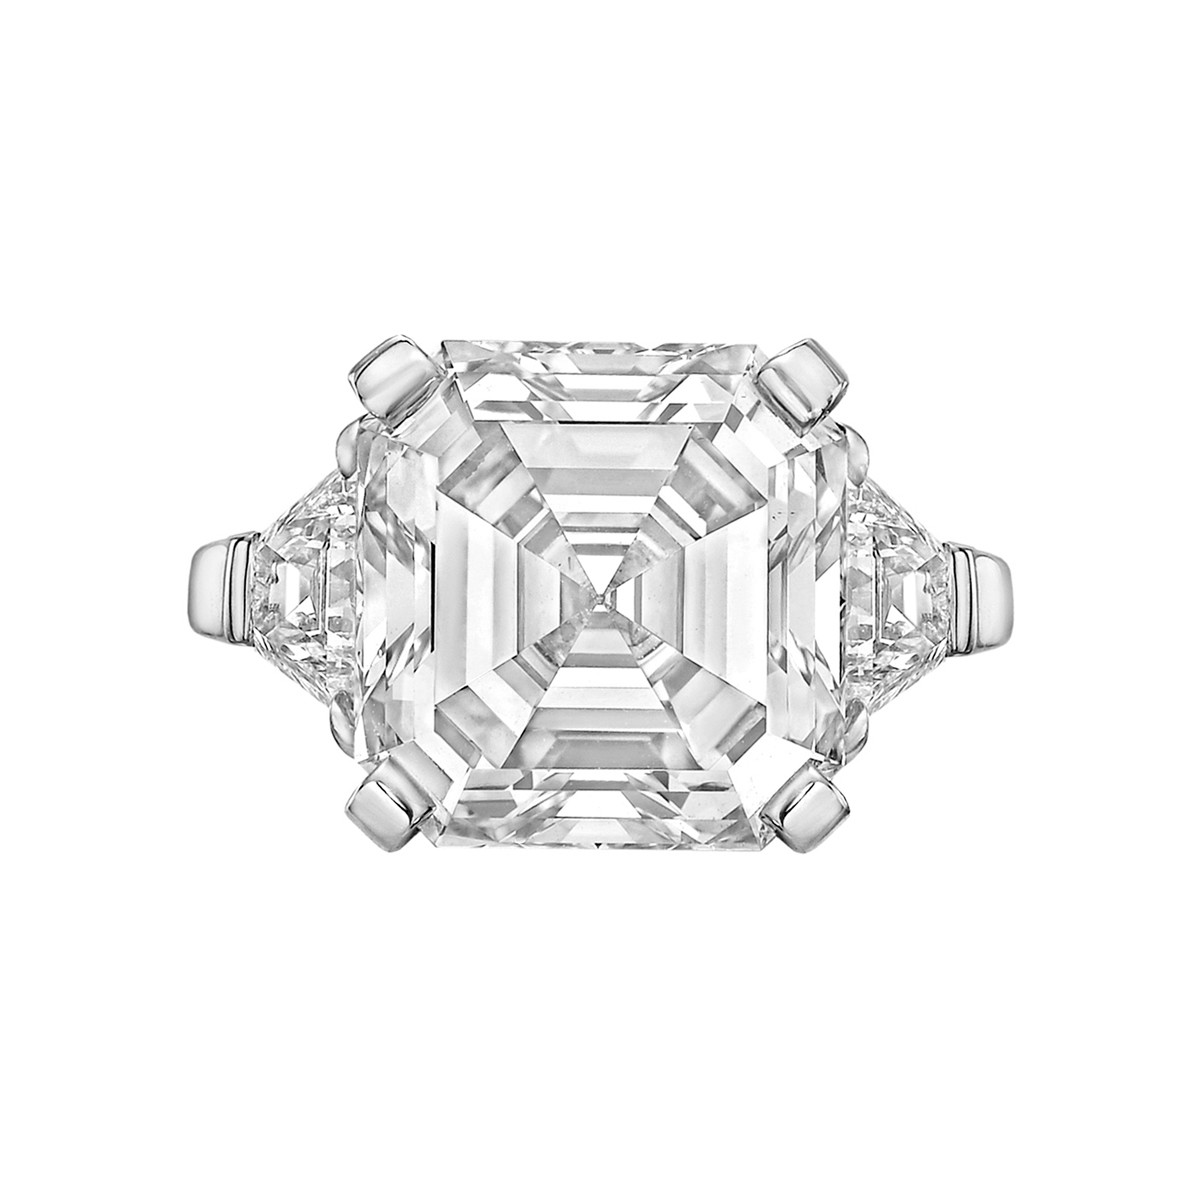 8.03 Carat Asscher-Cut Diamond Ring